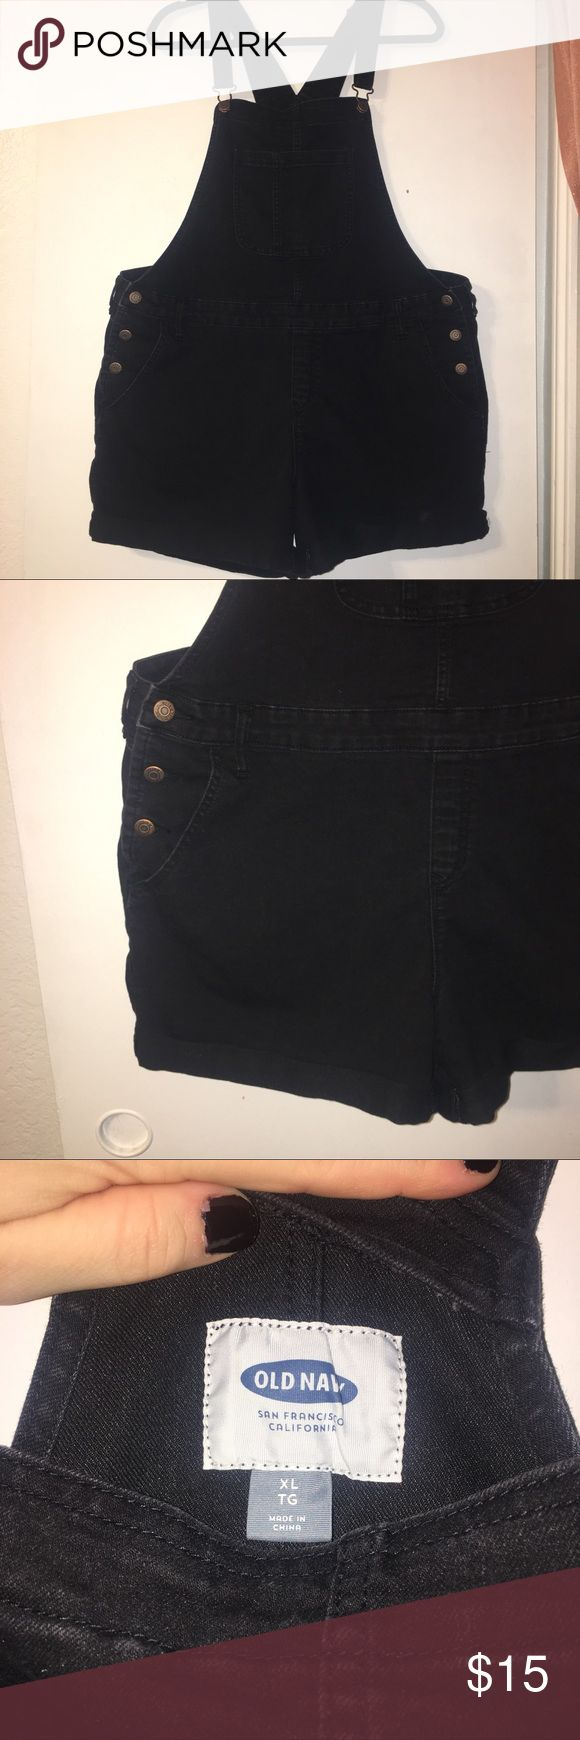 Old Navy Short Black Overalls Old Navy. Shorts Overalls. Black. Size XL Old Navy Jeans Overalls